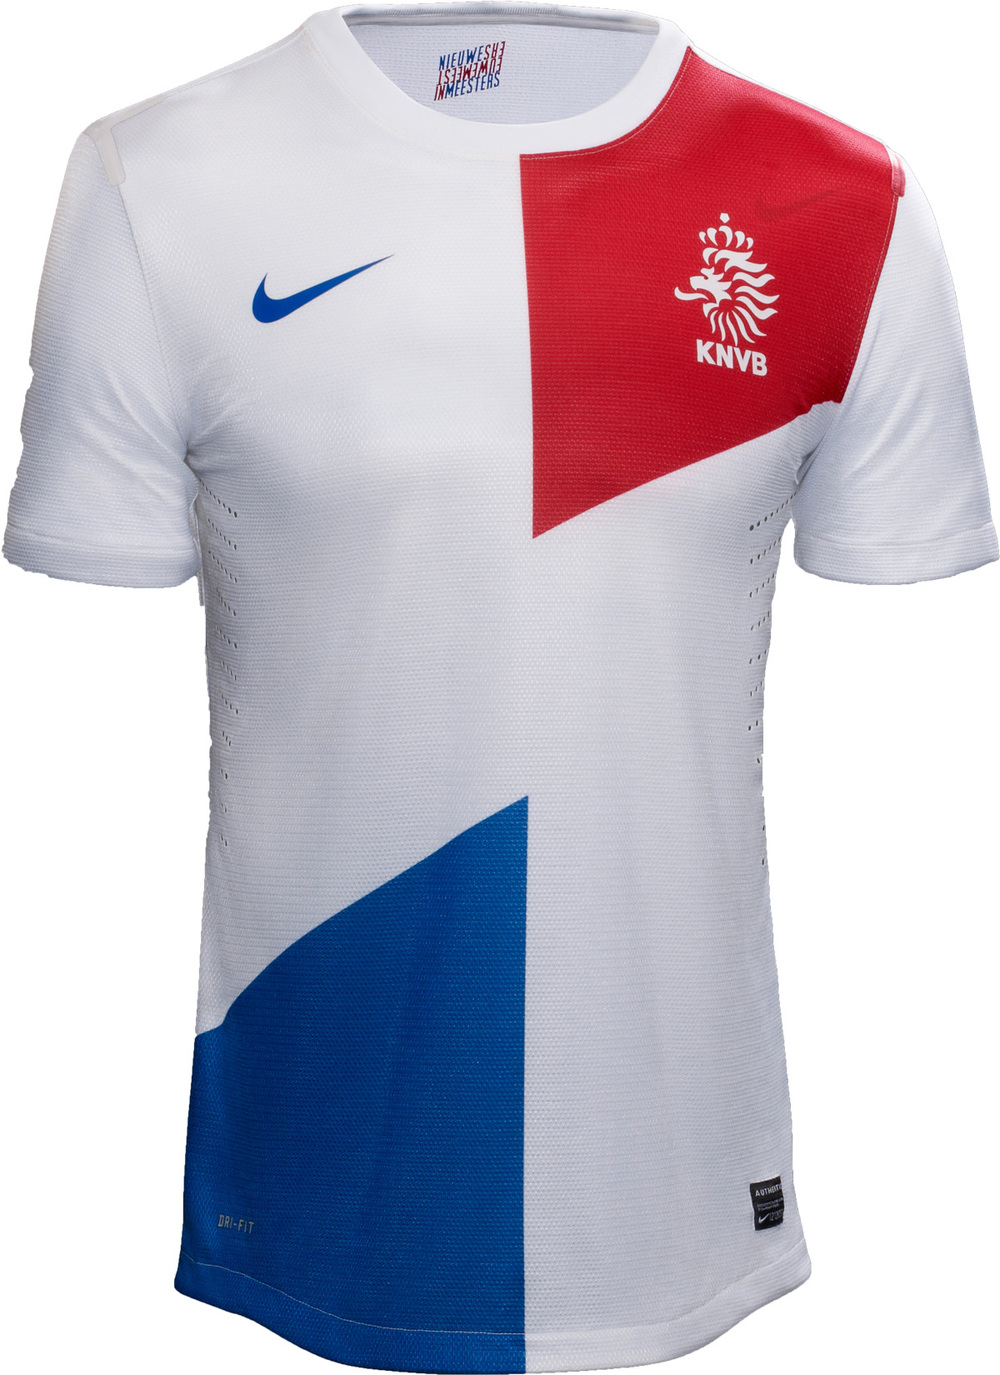 Nike_Football_Holland_Away_Jersey_1_original.jpg